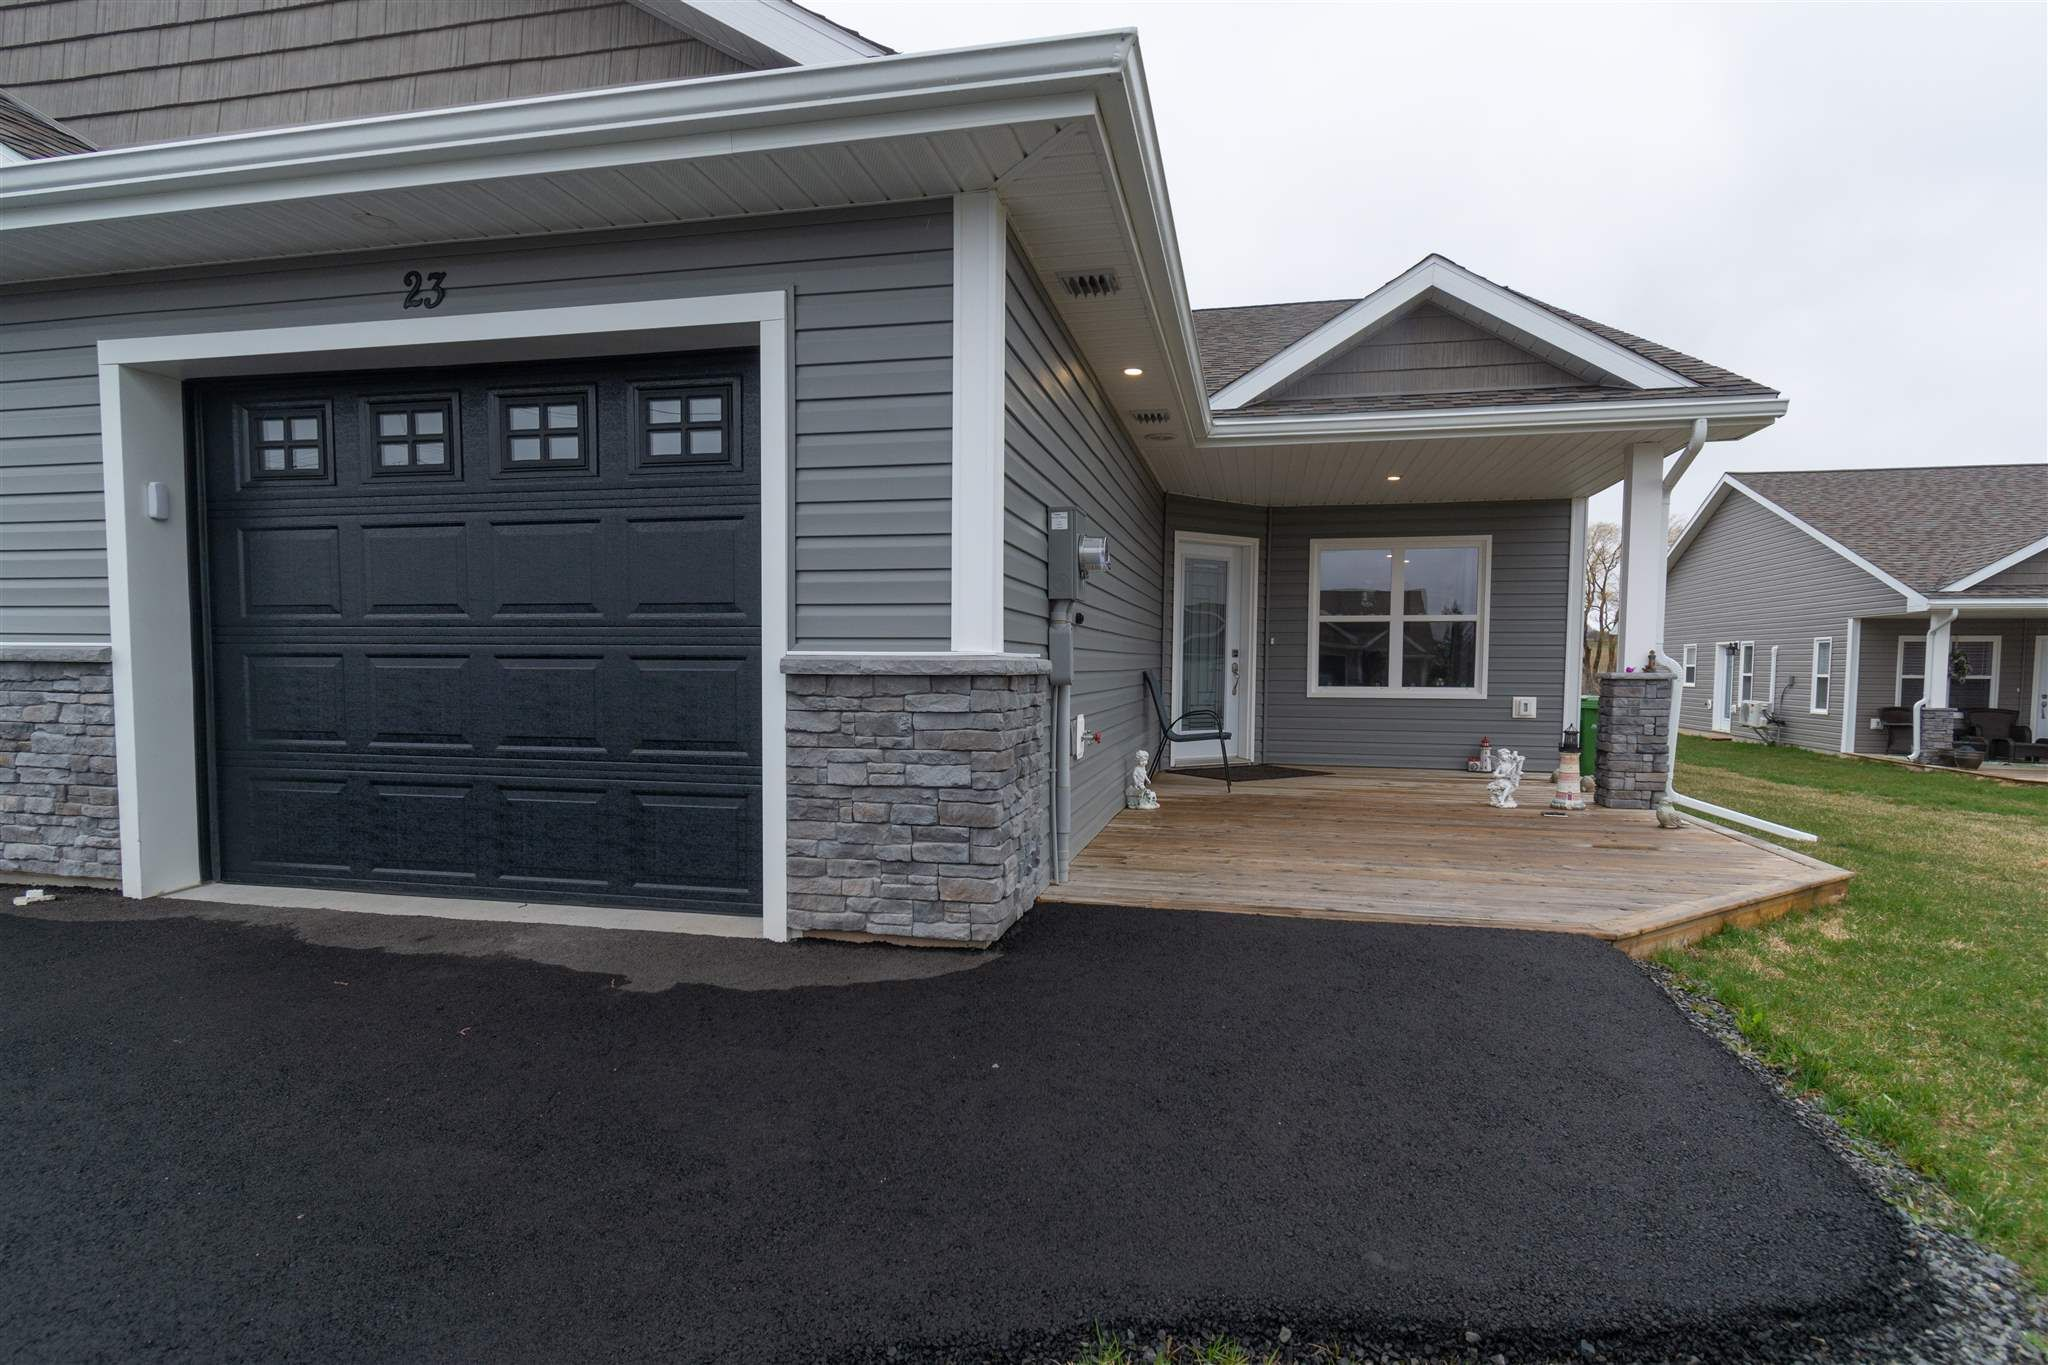 Main Photo: 23 Selena Court in Port Williams: 404-Kings County Residential for sale (Annapolis Valley)  : MLS®# 202109664